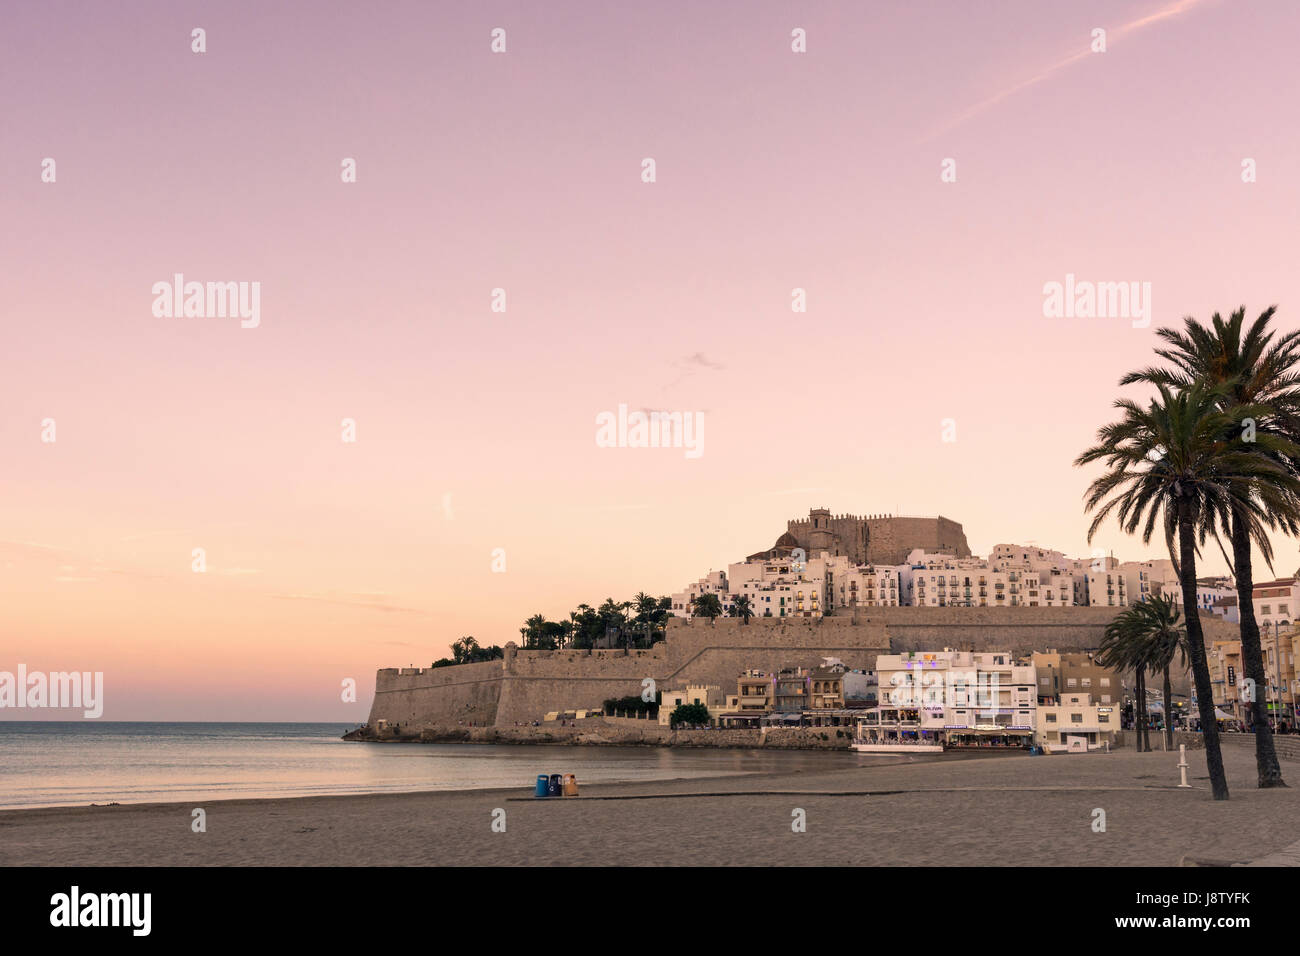 Sunset over Papa Luna's Castle and old town overlooking the beach, Playa Norte, Peniscola, Castellon, Spain - Stock Image